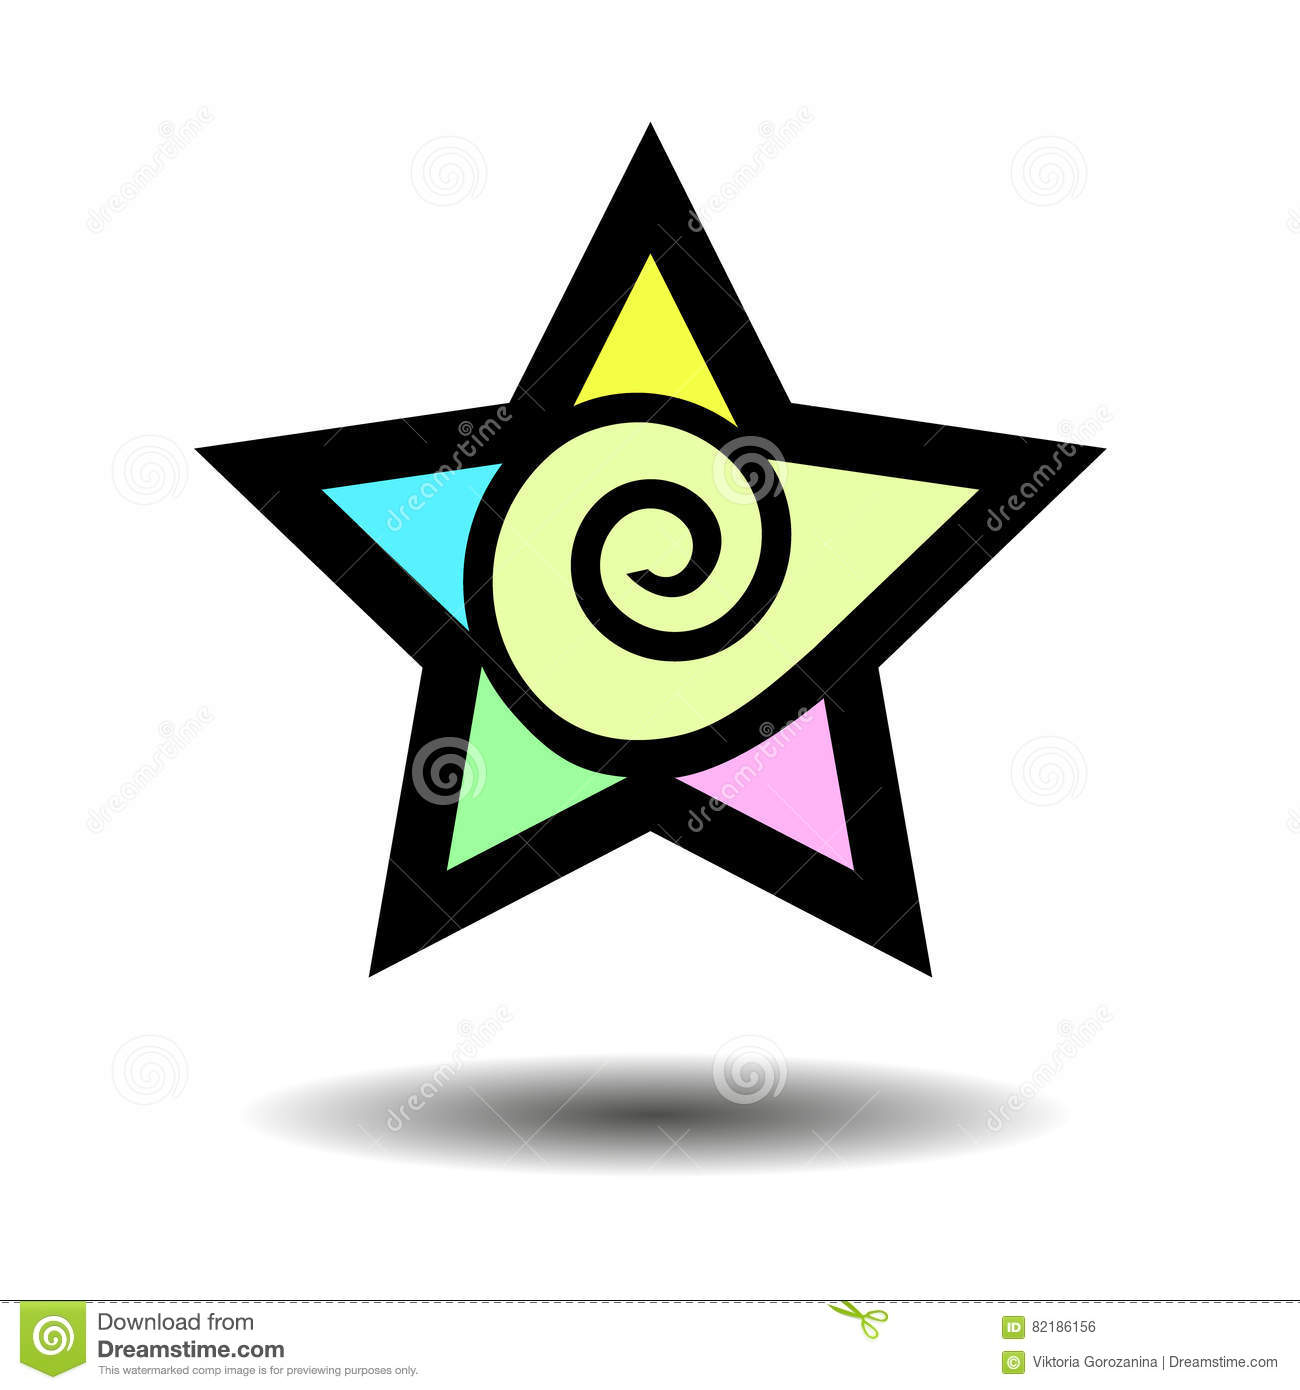 Abstract Five Point Star Geometric Shape Colorful Star Symbol